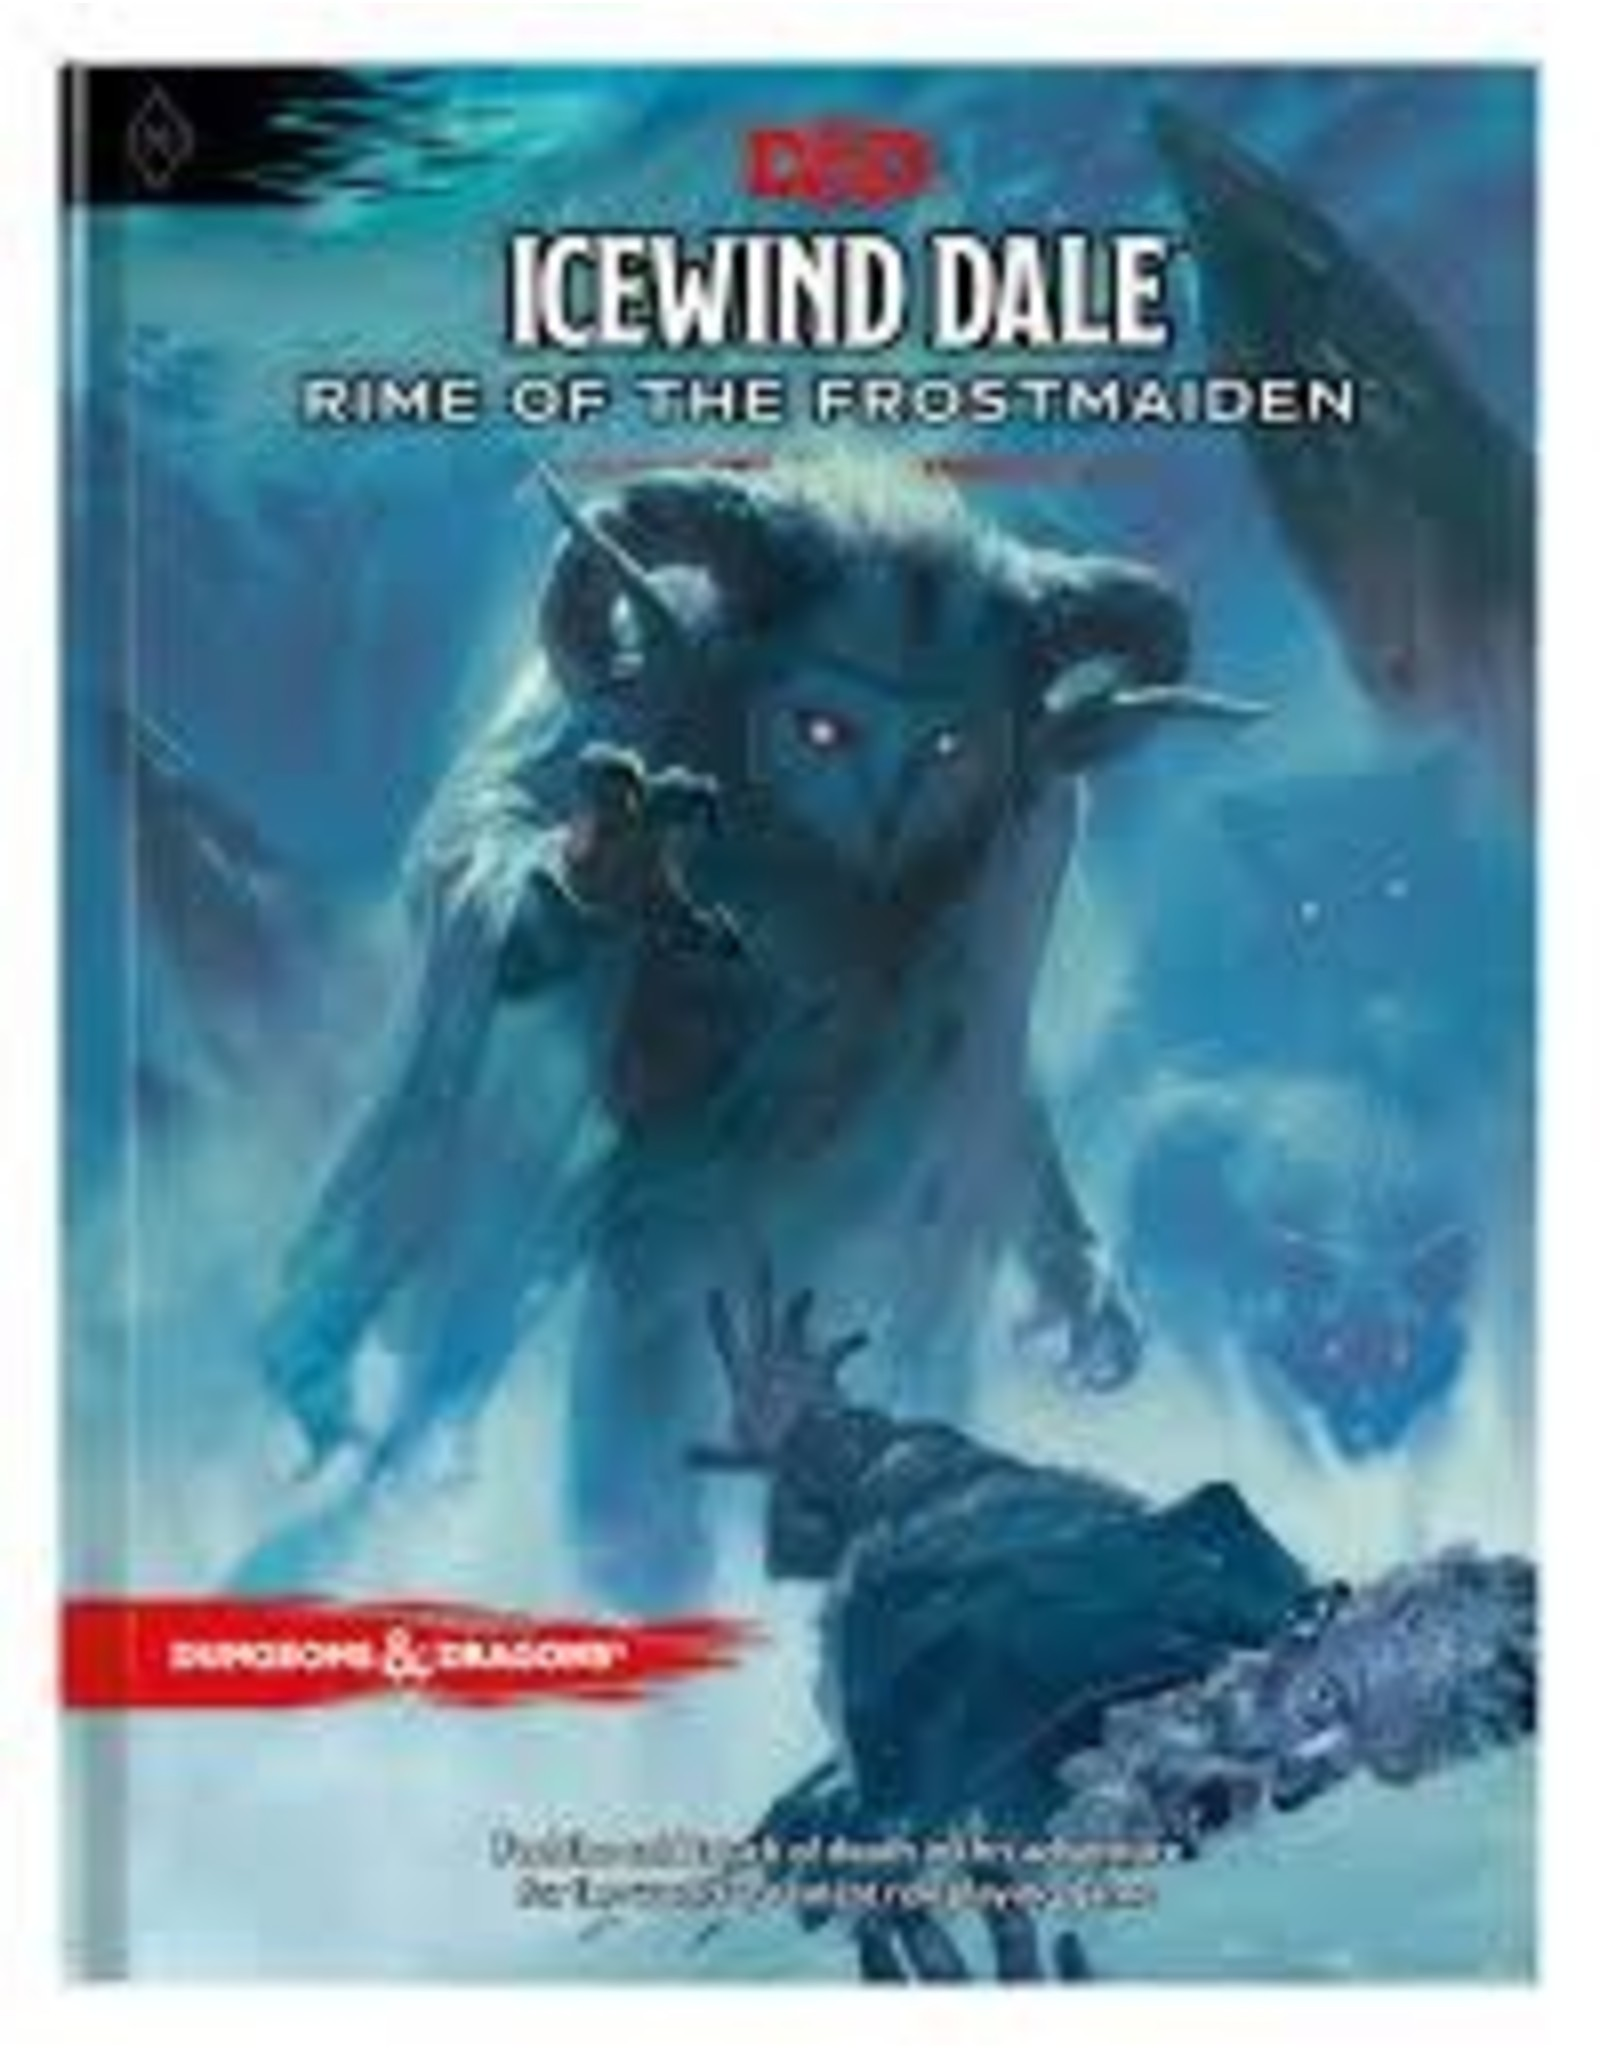 Wizards of the Coast D&D 5.0: Icewind Dale - Rime of the Frostmaiden